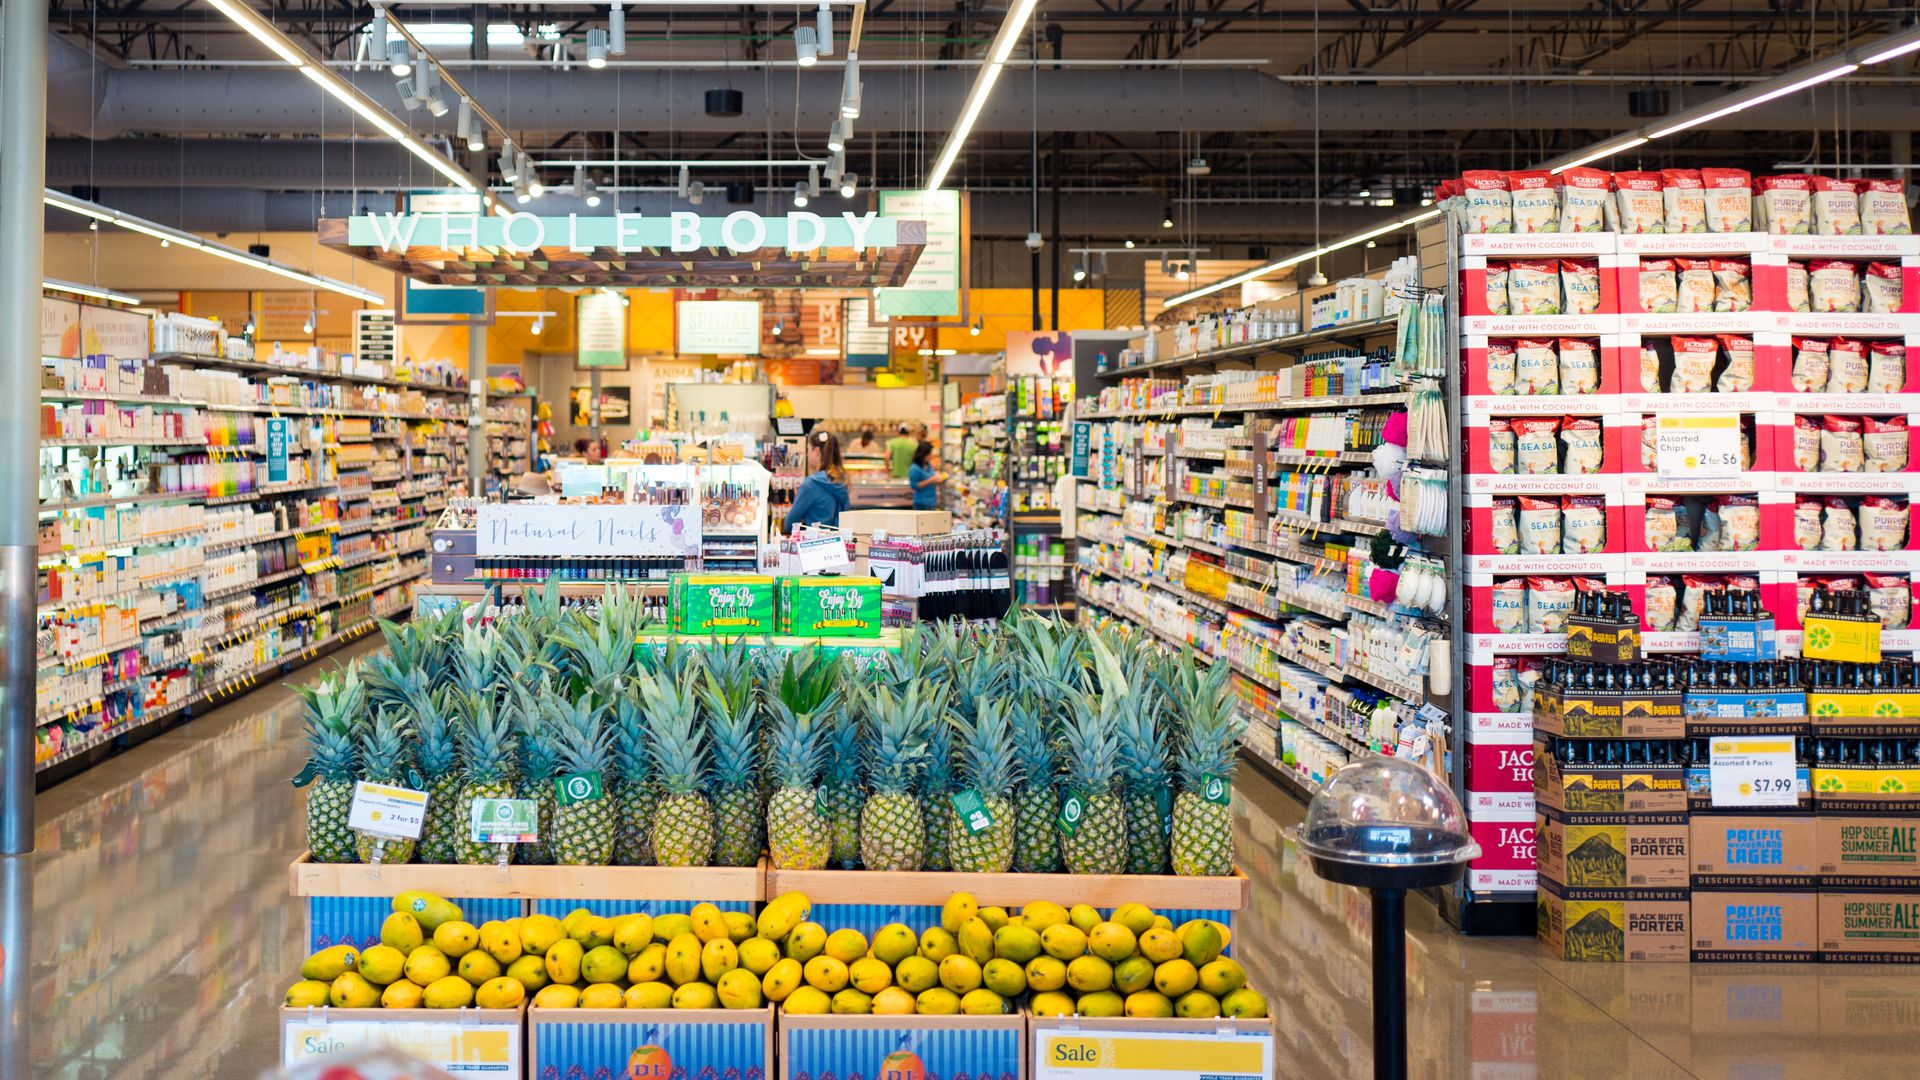 A headlong view of a Whole Foods aisle stocked with colorful boxes